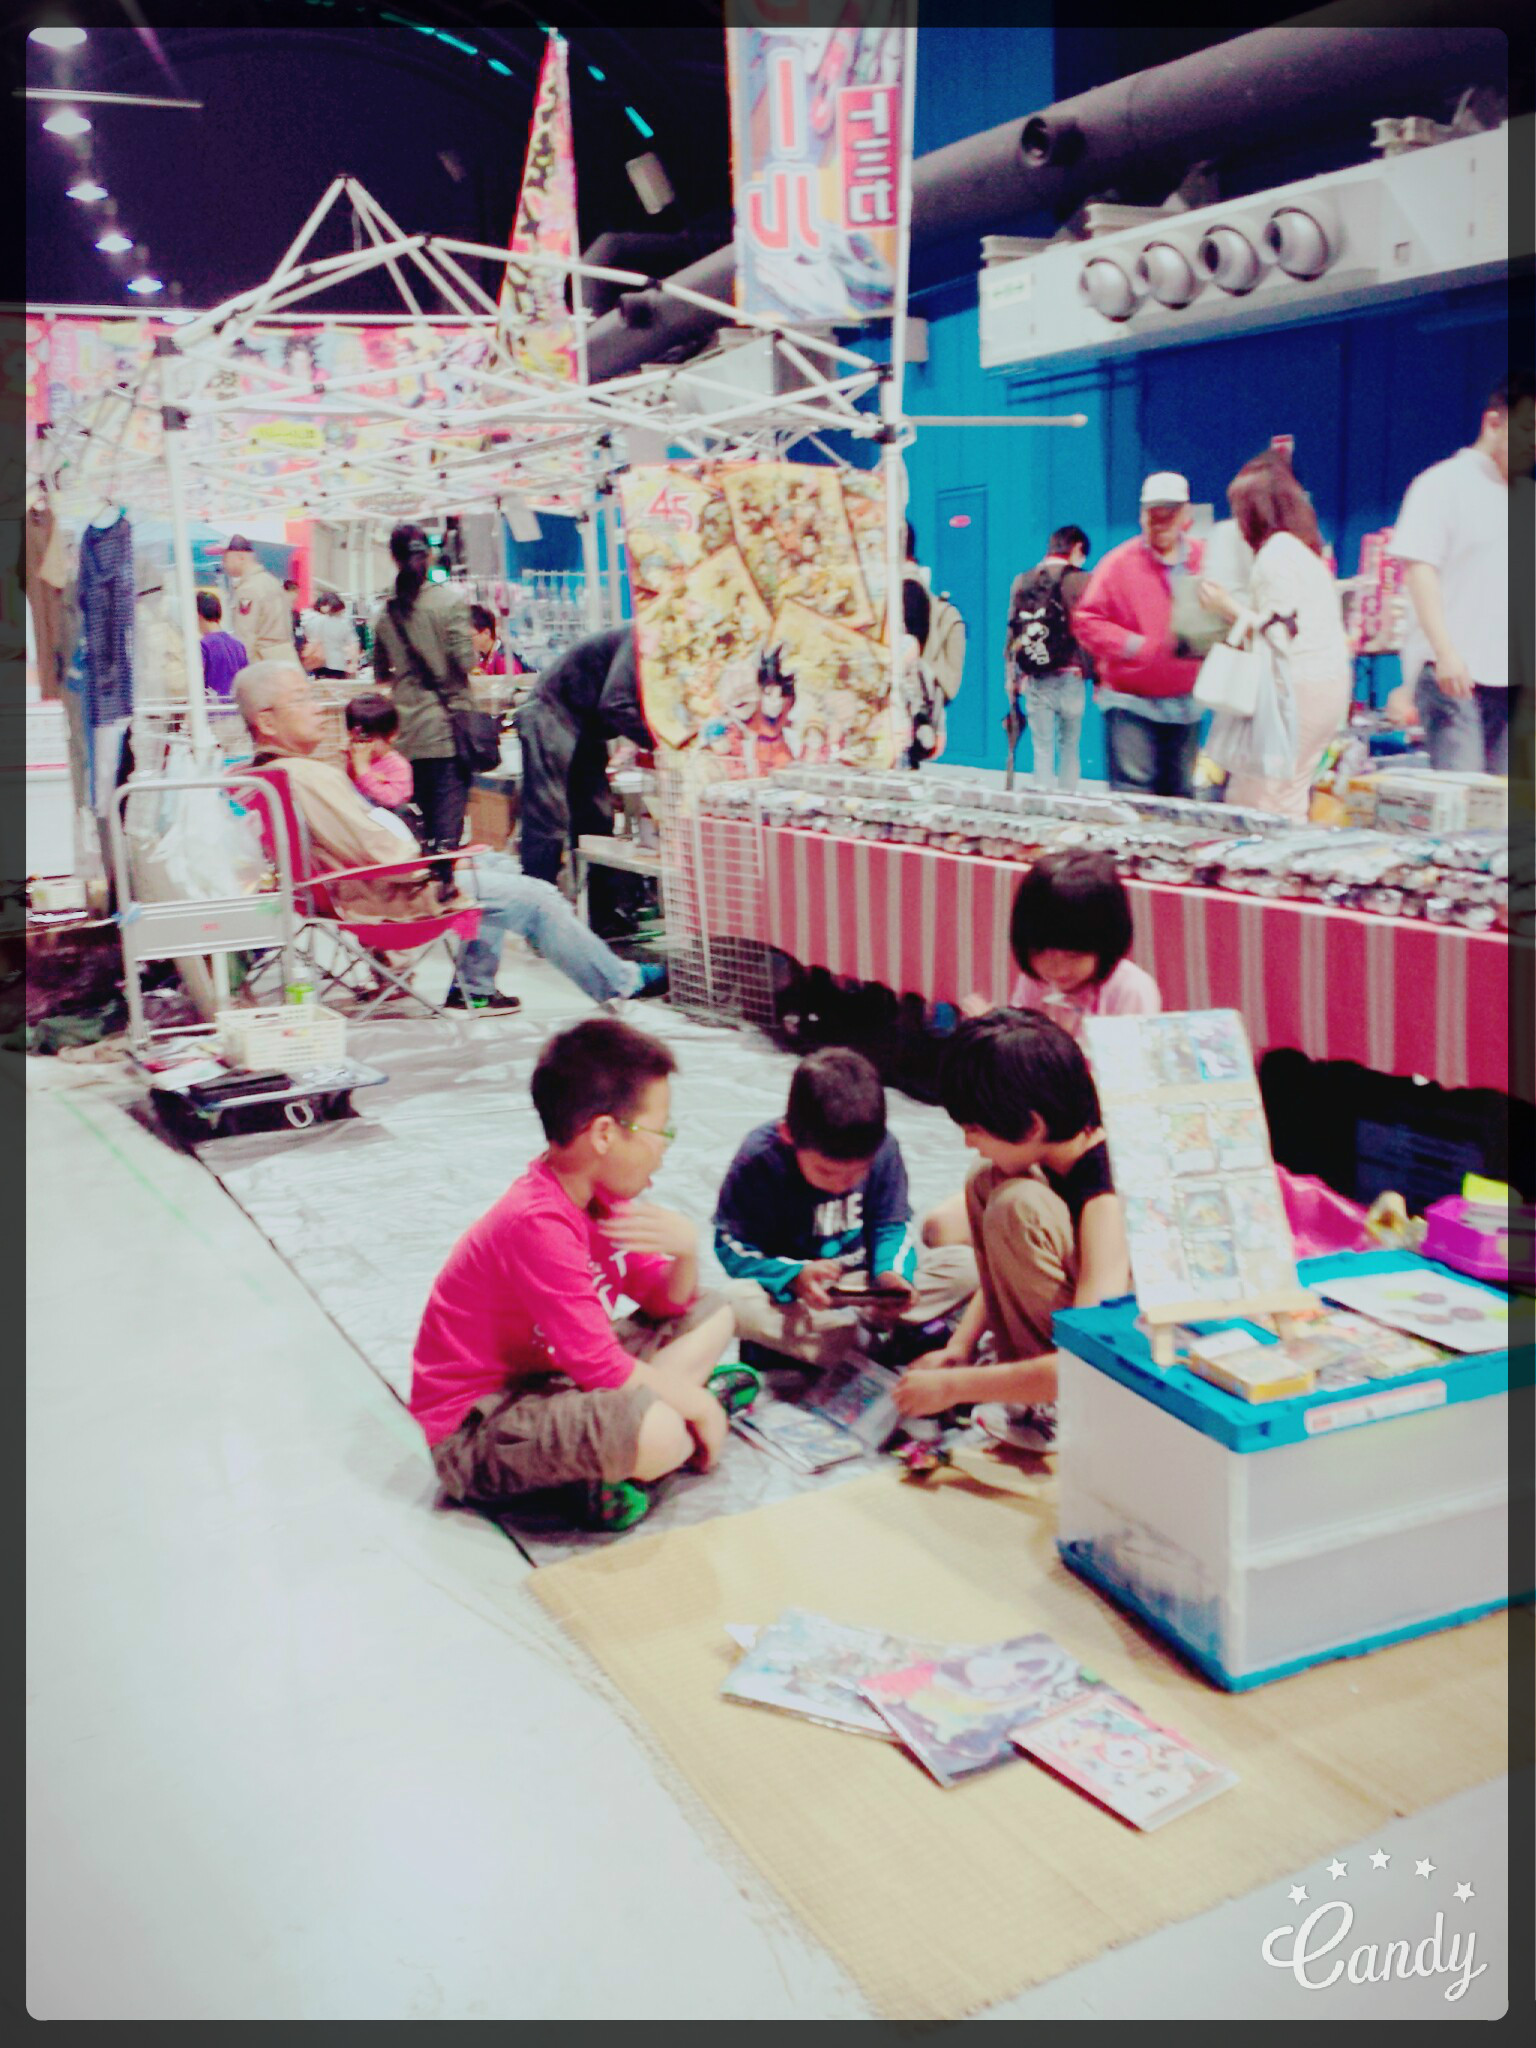 Visiting Flea Markets in Kansai.. Children playing.